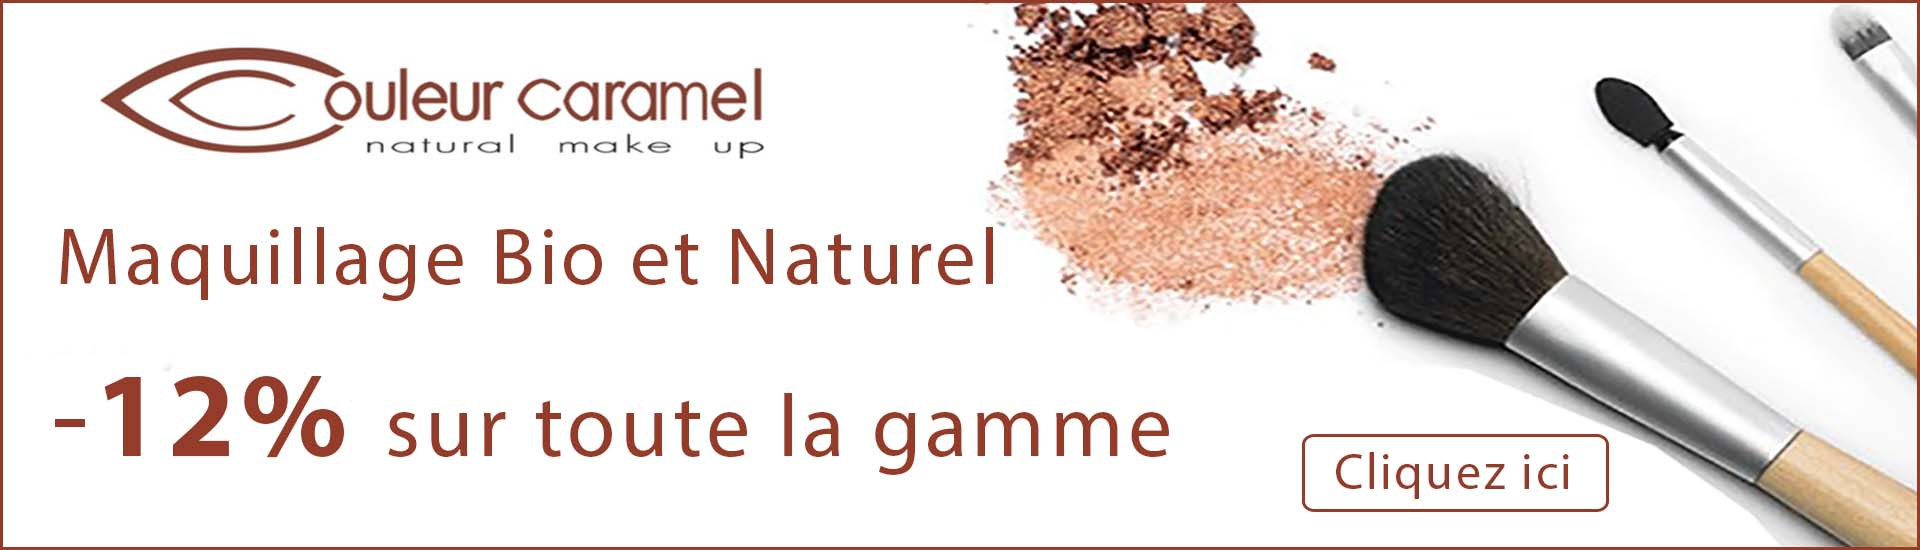 Maquillage Bio - Couleur Caramel -12%